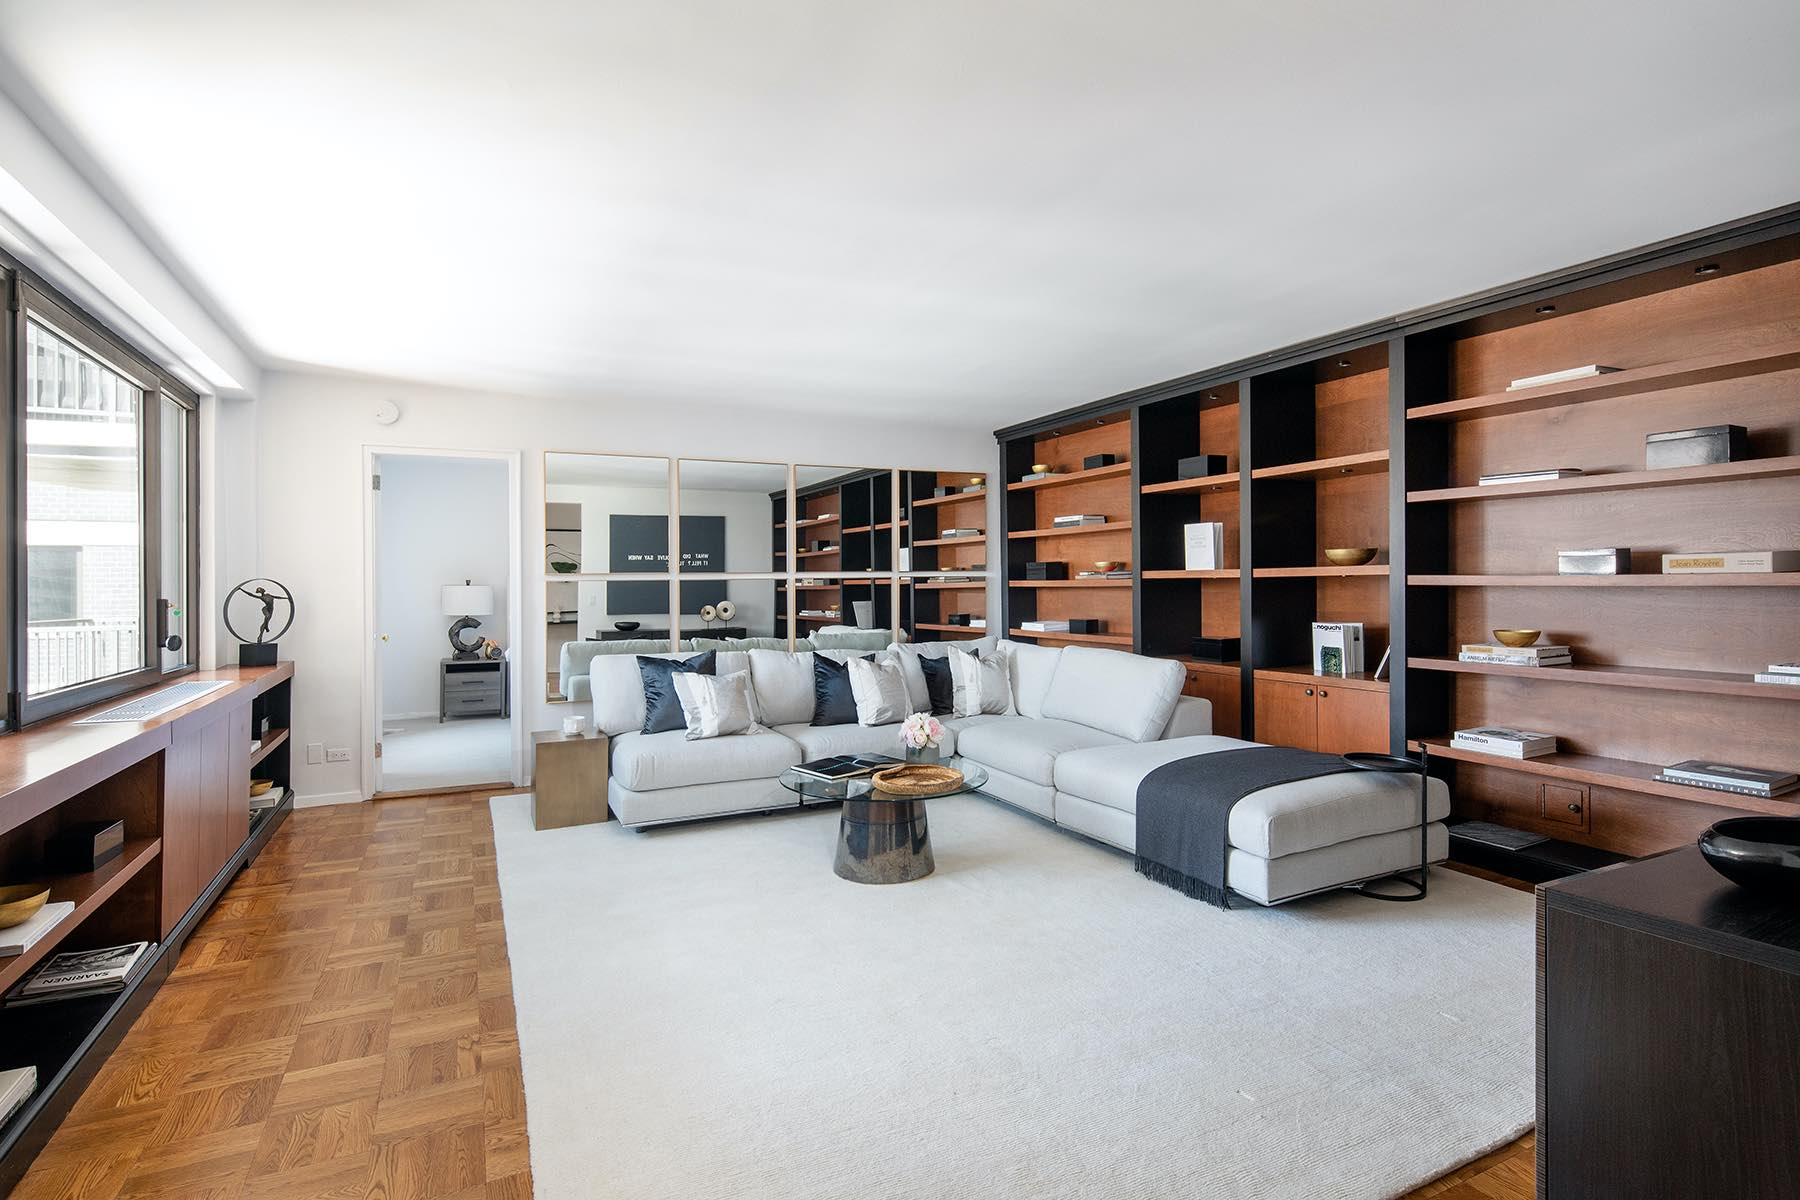 Apartment for sale at 10 West 66th Street, Apt 19EF